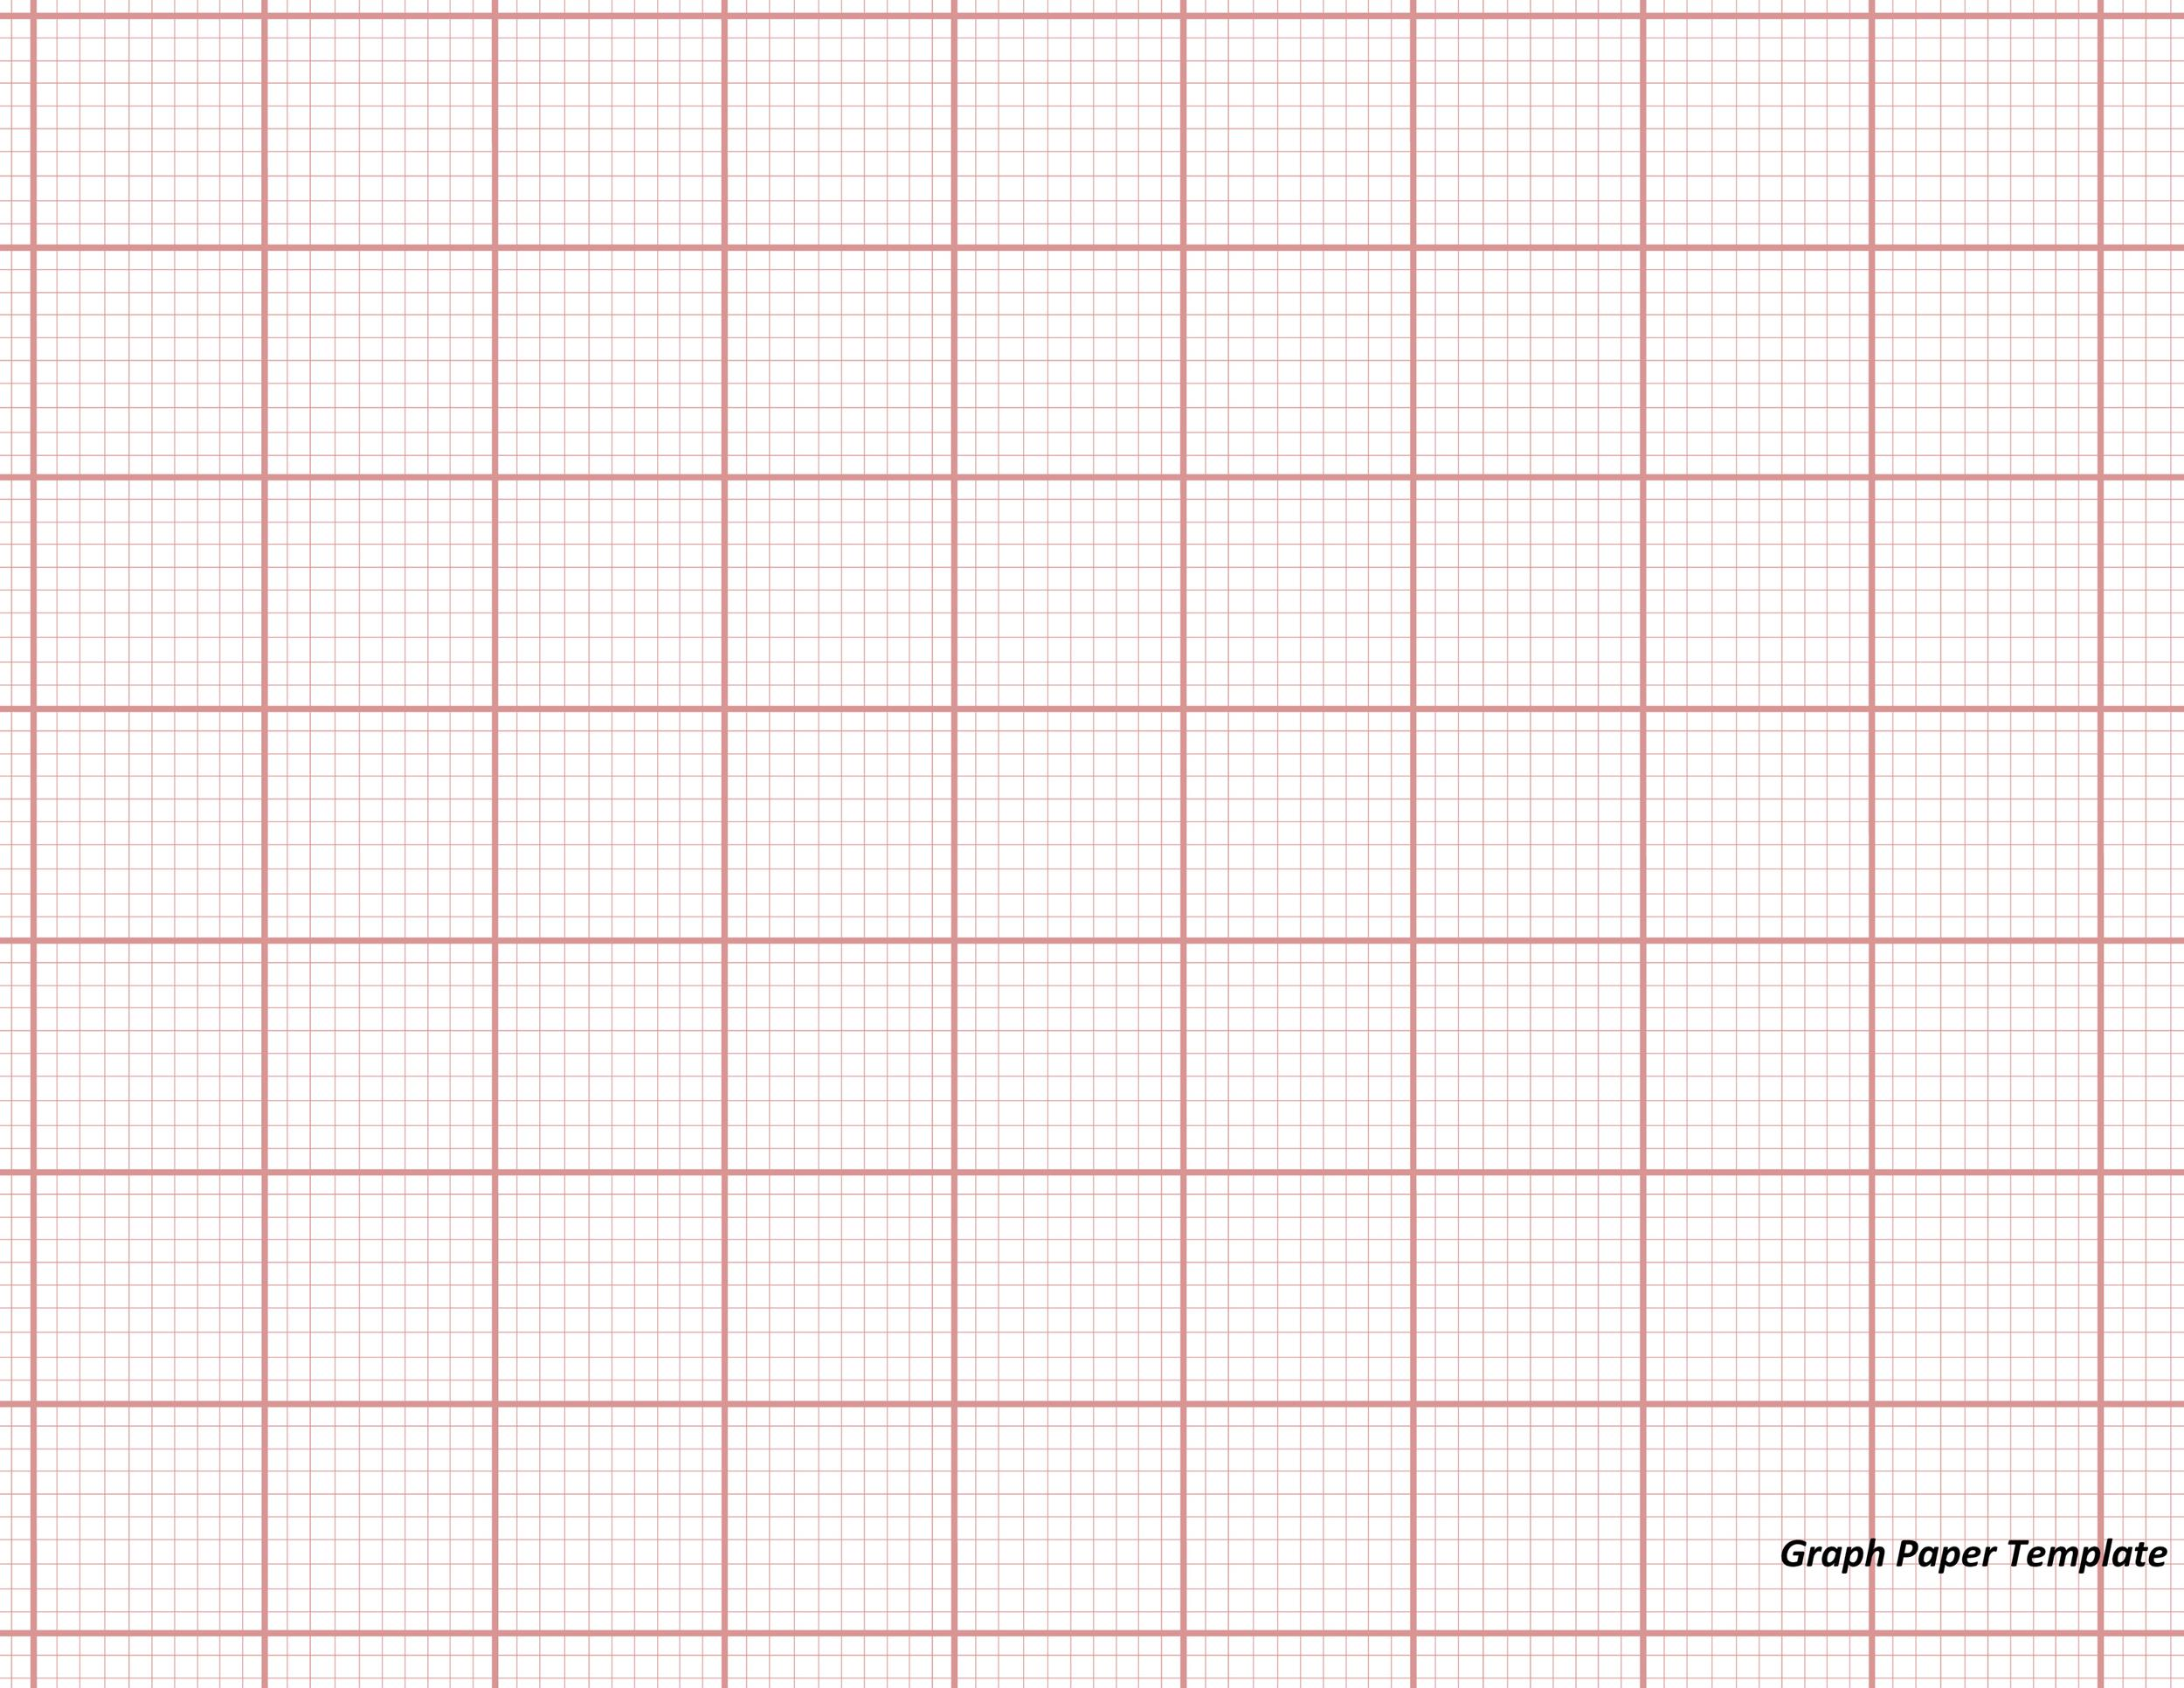 30+ Free Printable Graph Paper Templates (Word, PDF) ᐅ Template Lab